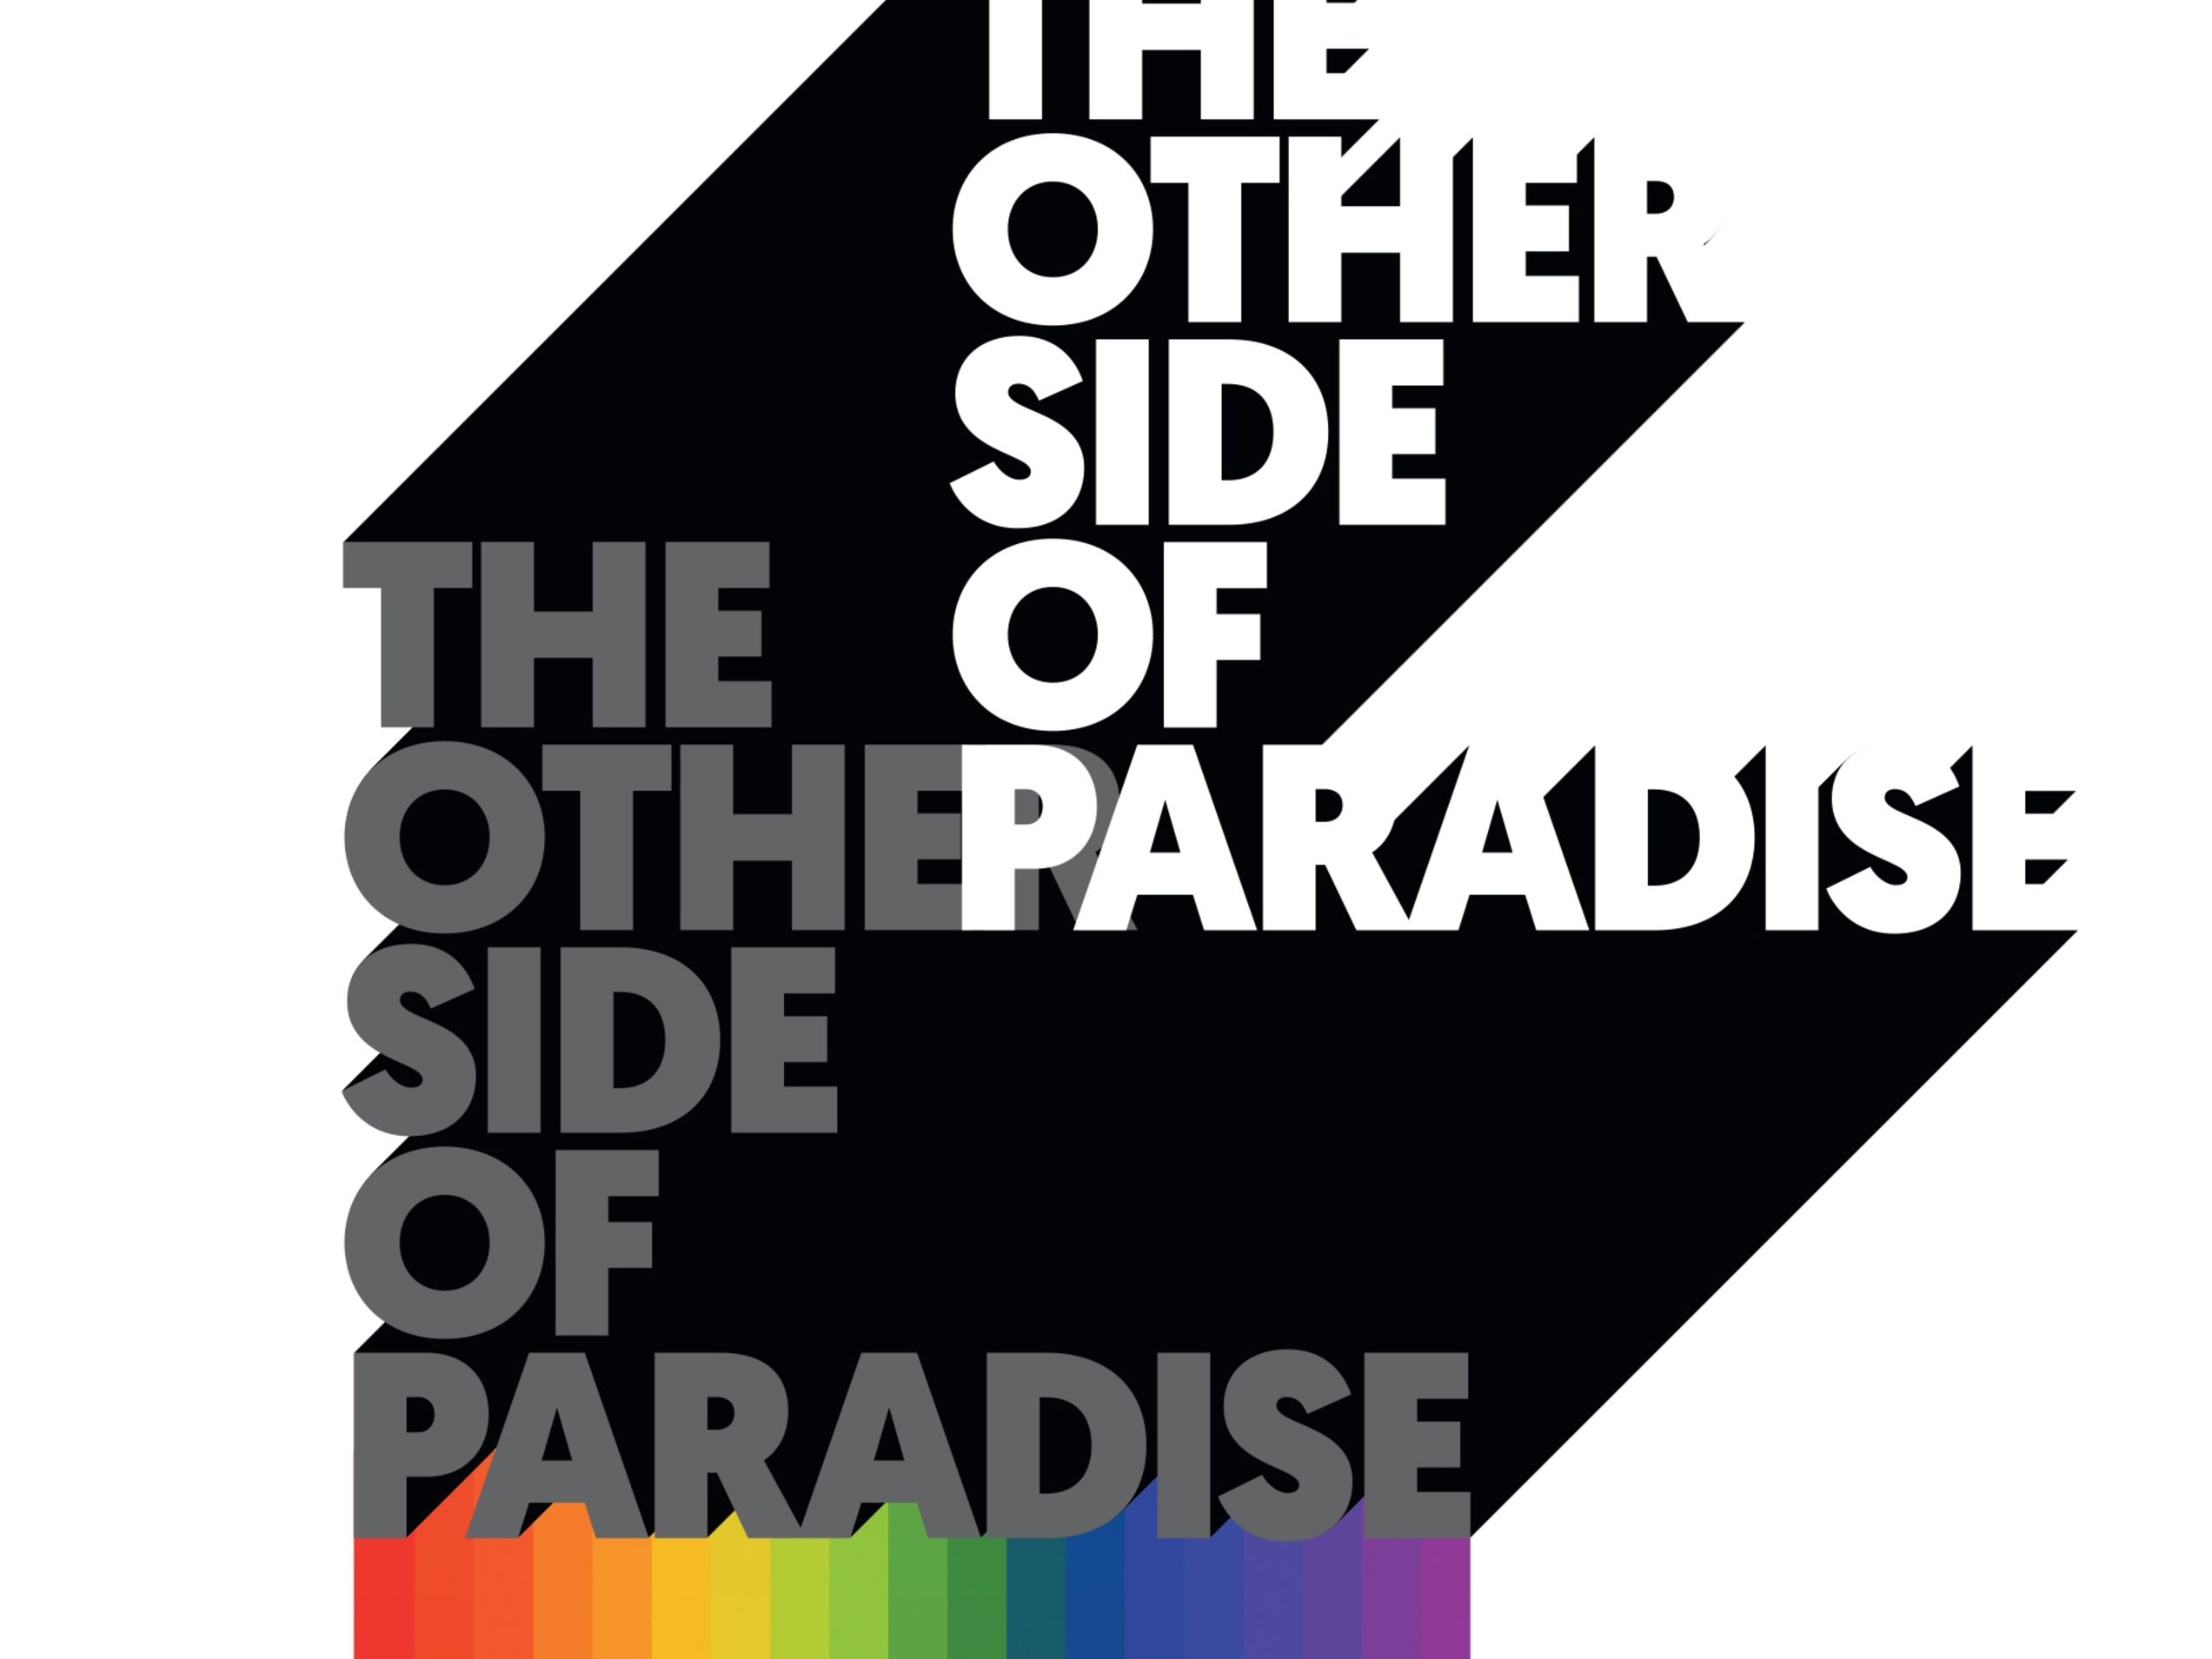 Other side paradise mjyrsd